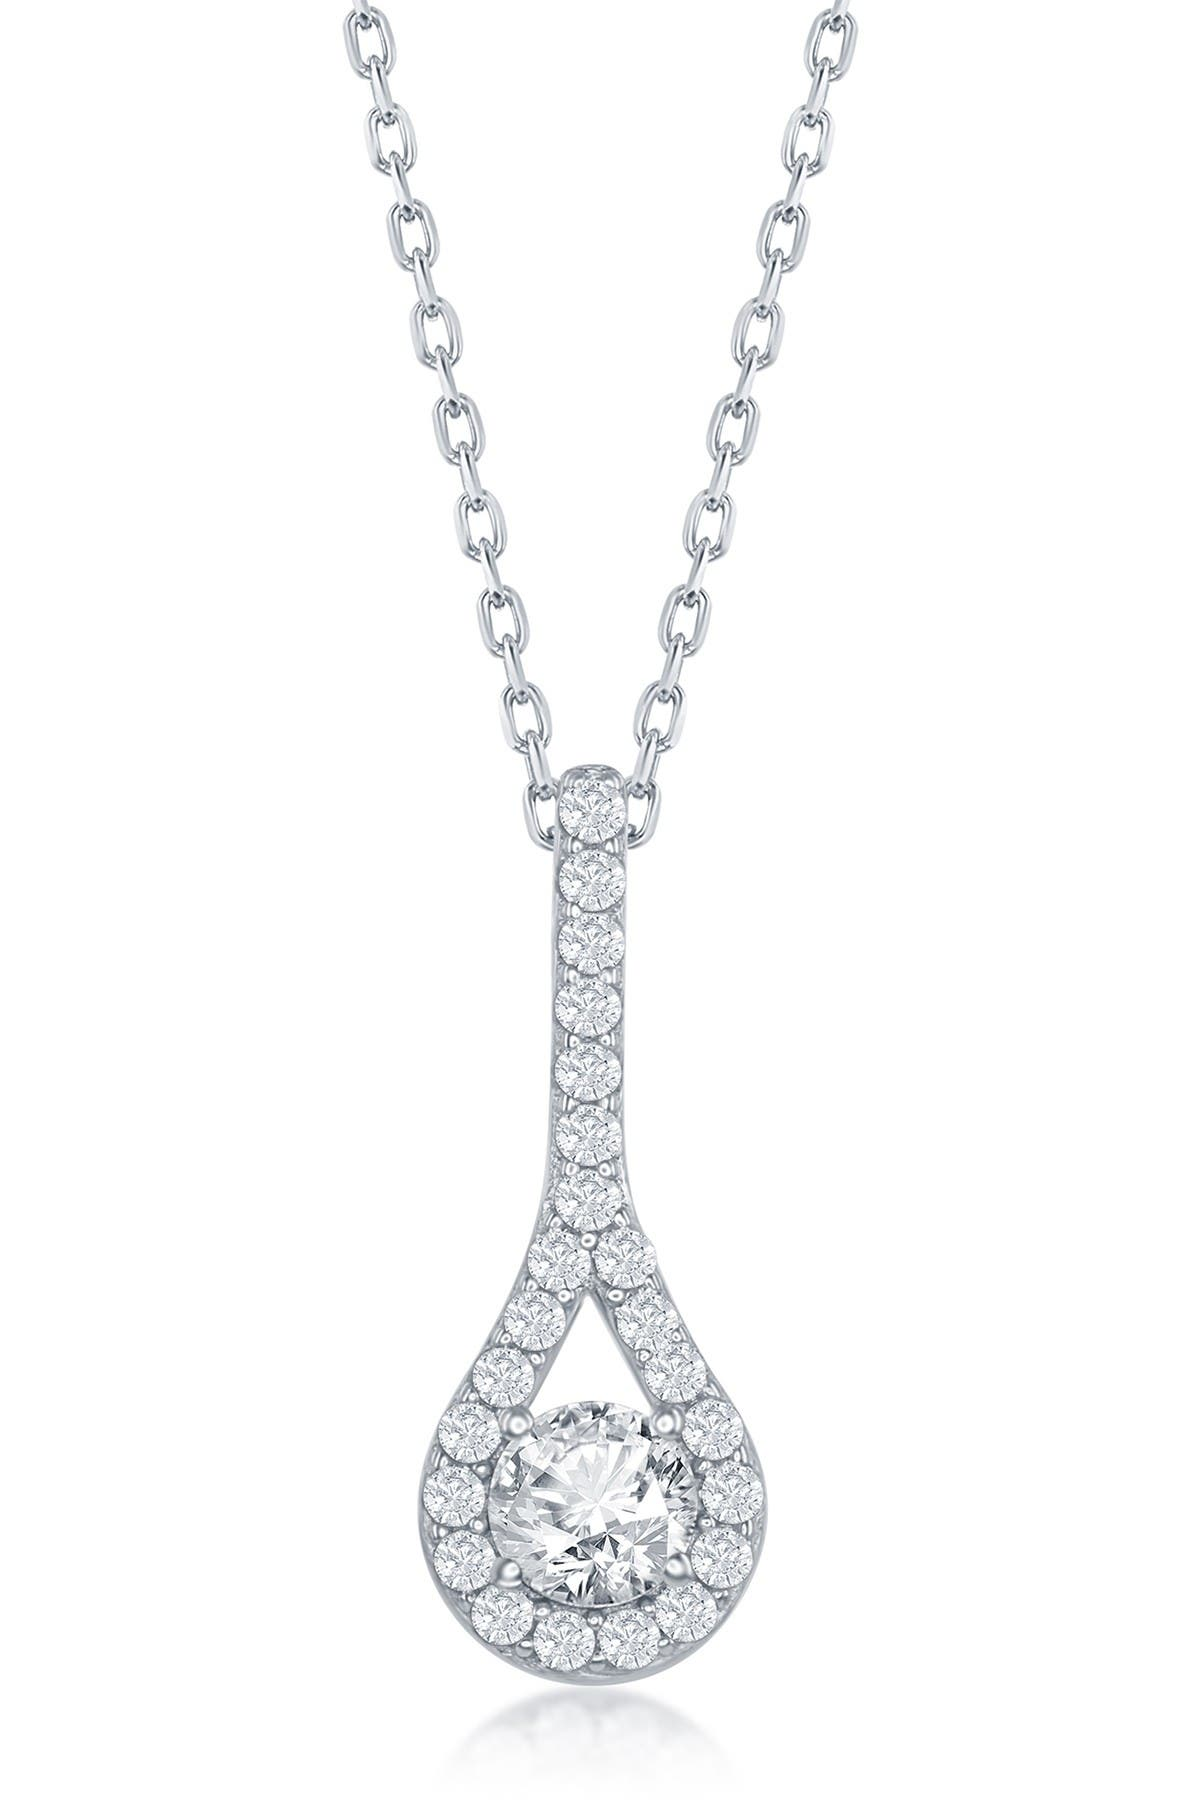 Image of Simona Jewelry Sterling Silver CZ Teardrop Pendant Necklace